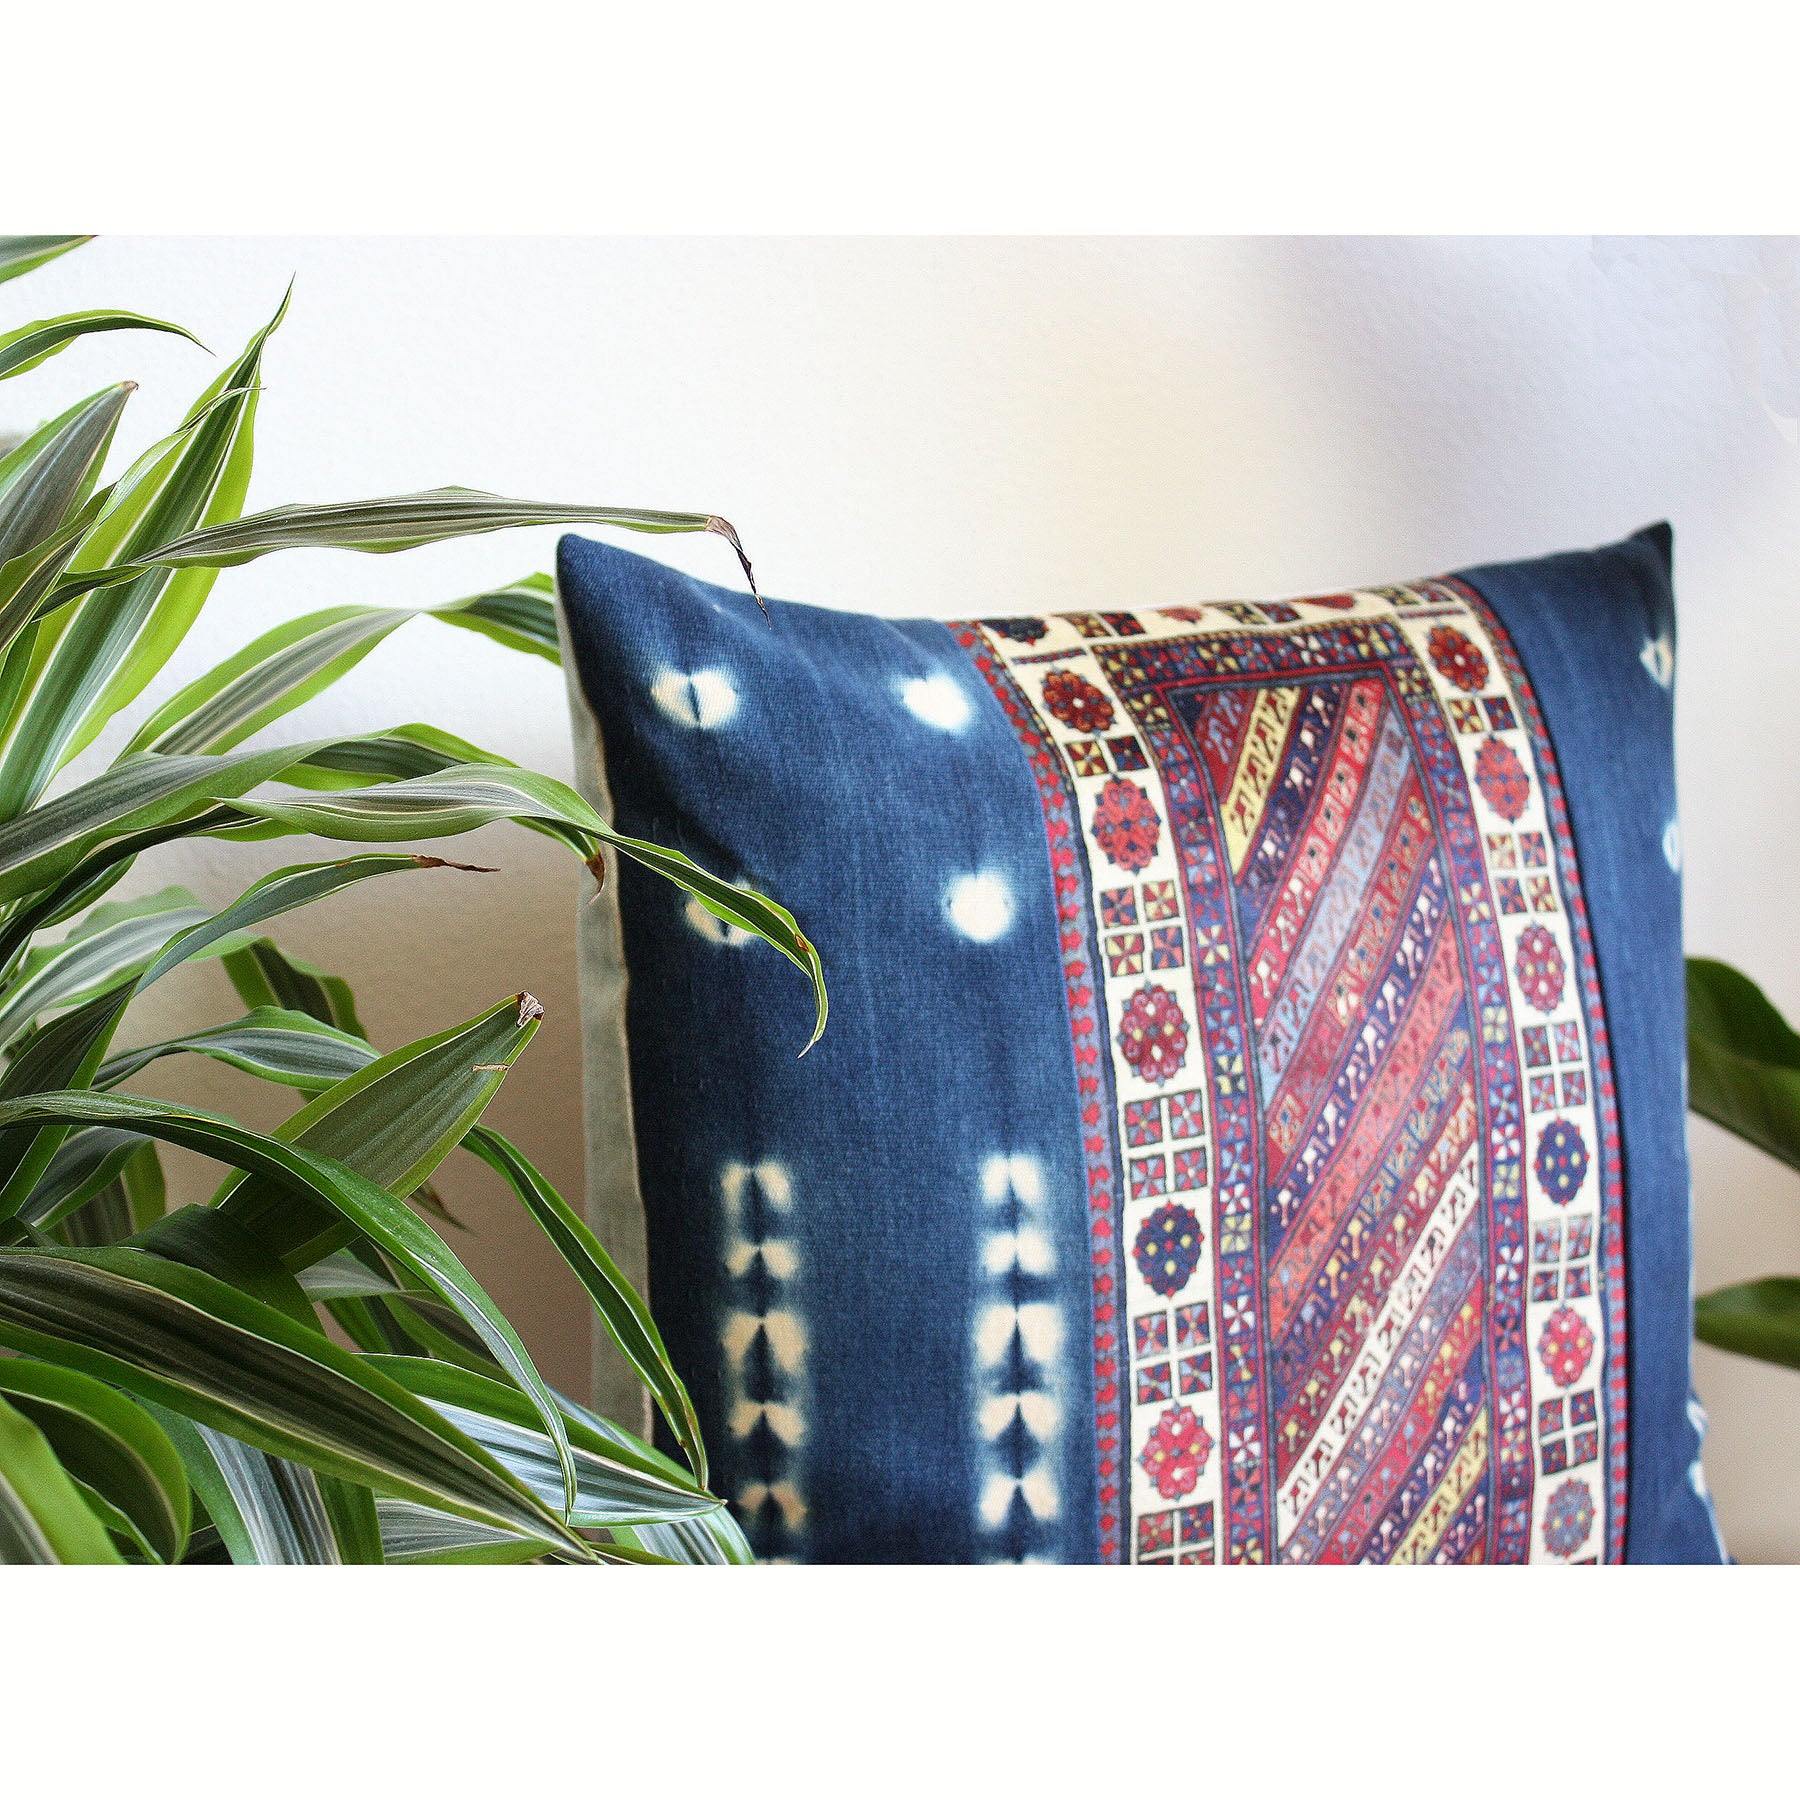 covers gallery white blanket pillow decorative cushion throw cover